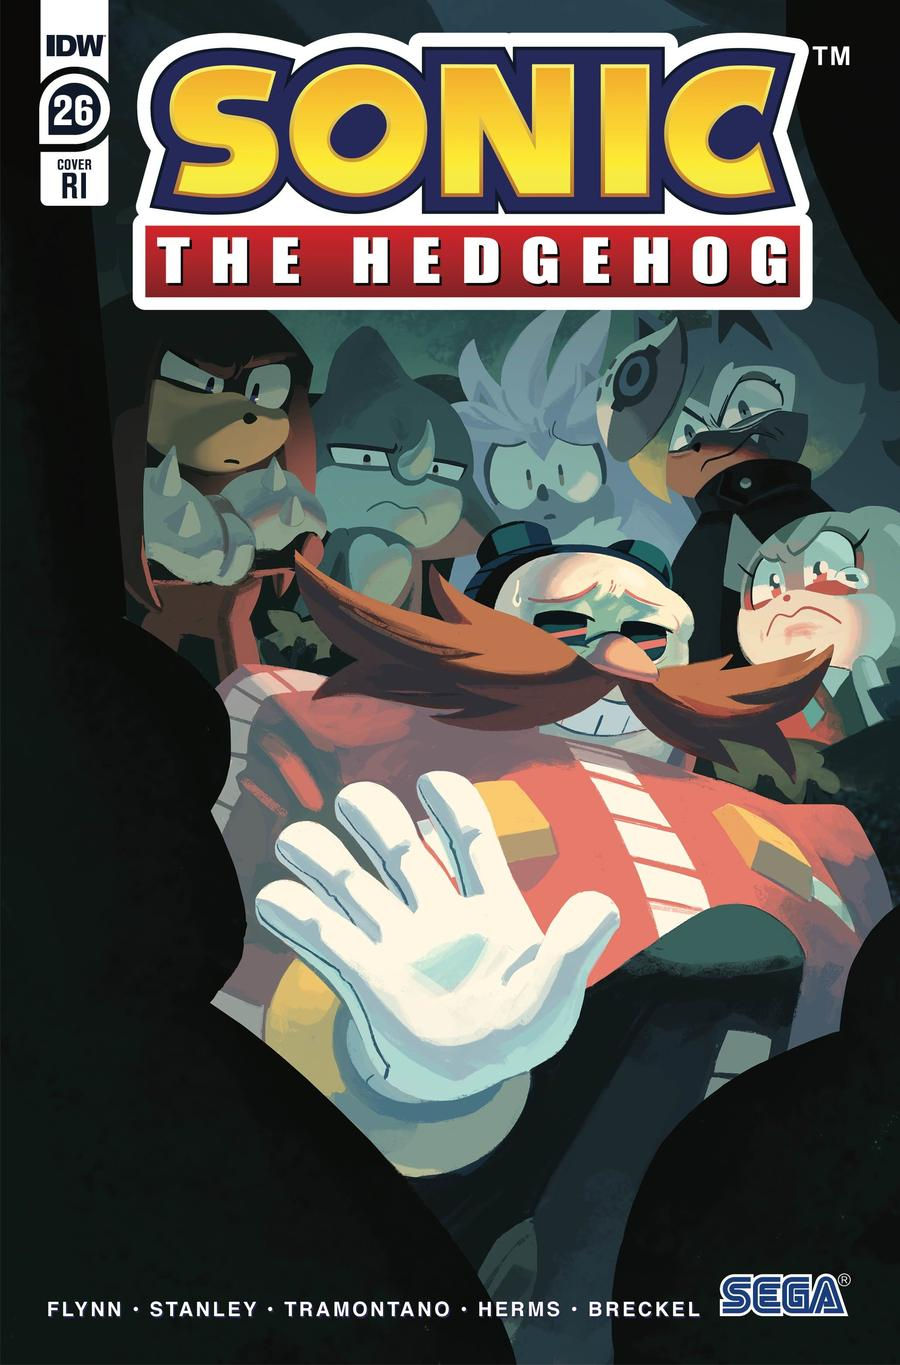 Sonic The Hedgehog Vol 3 #26 Cover C Incentive Nathalie Fourdraine Variant Cover